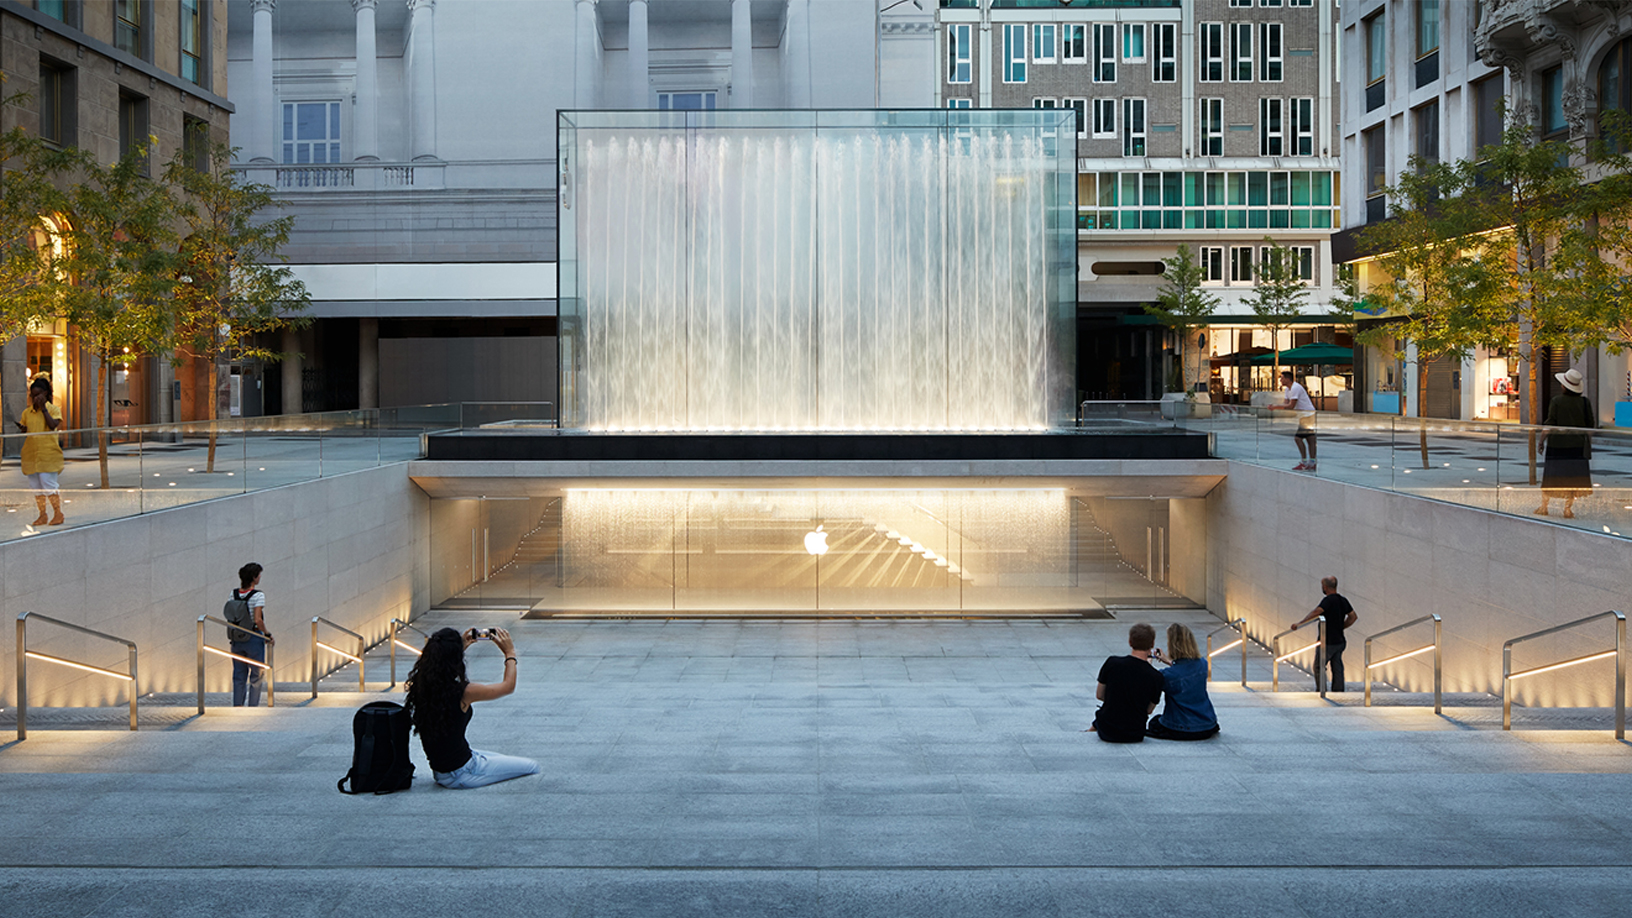 Apple Store on Milan's Piazza Liberty.